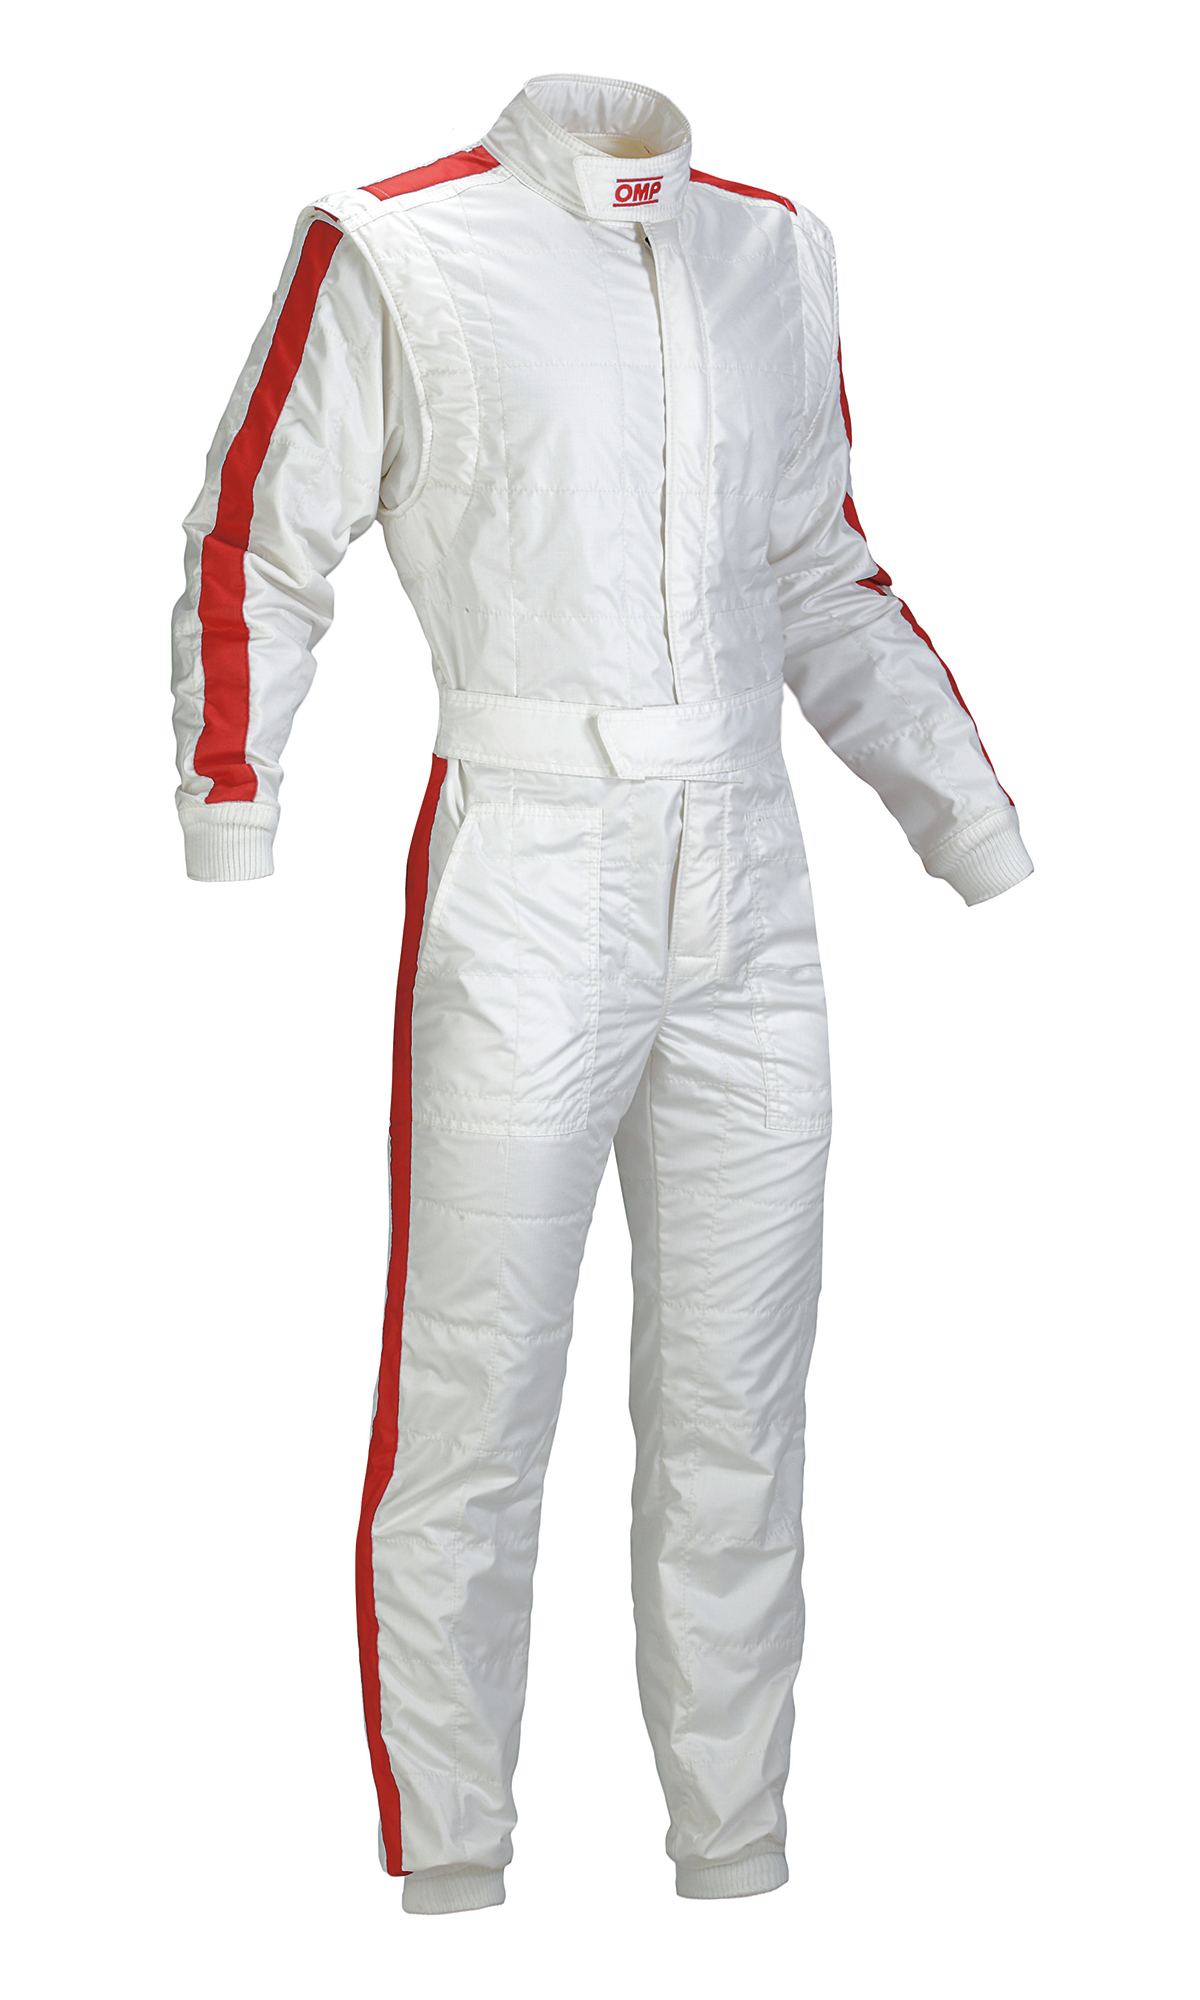 Racing Fire Suits >> OMP Vintage One Race Suit | FIA Approved Retro Overalls | 3 Layer Historic Race Suit | FIA 8856 ...